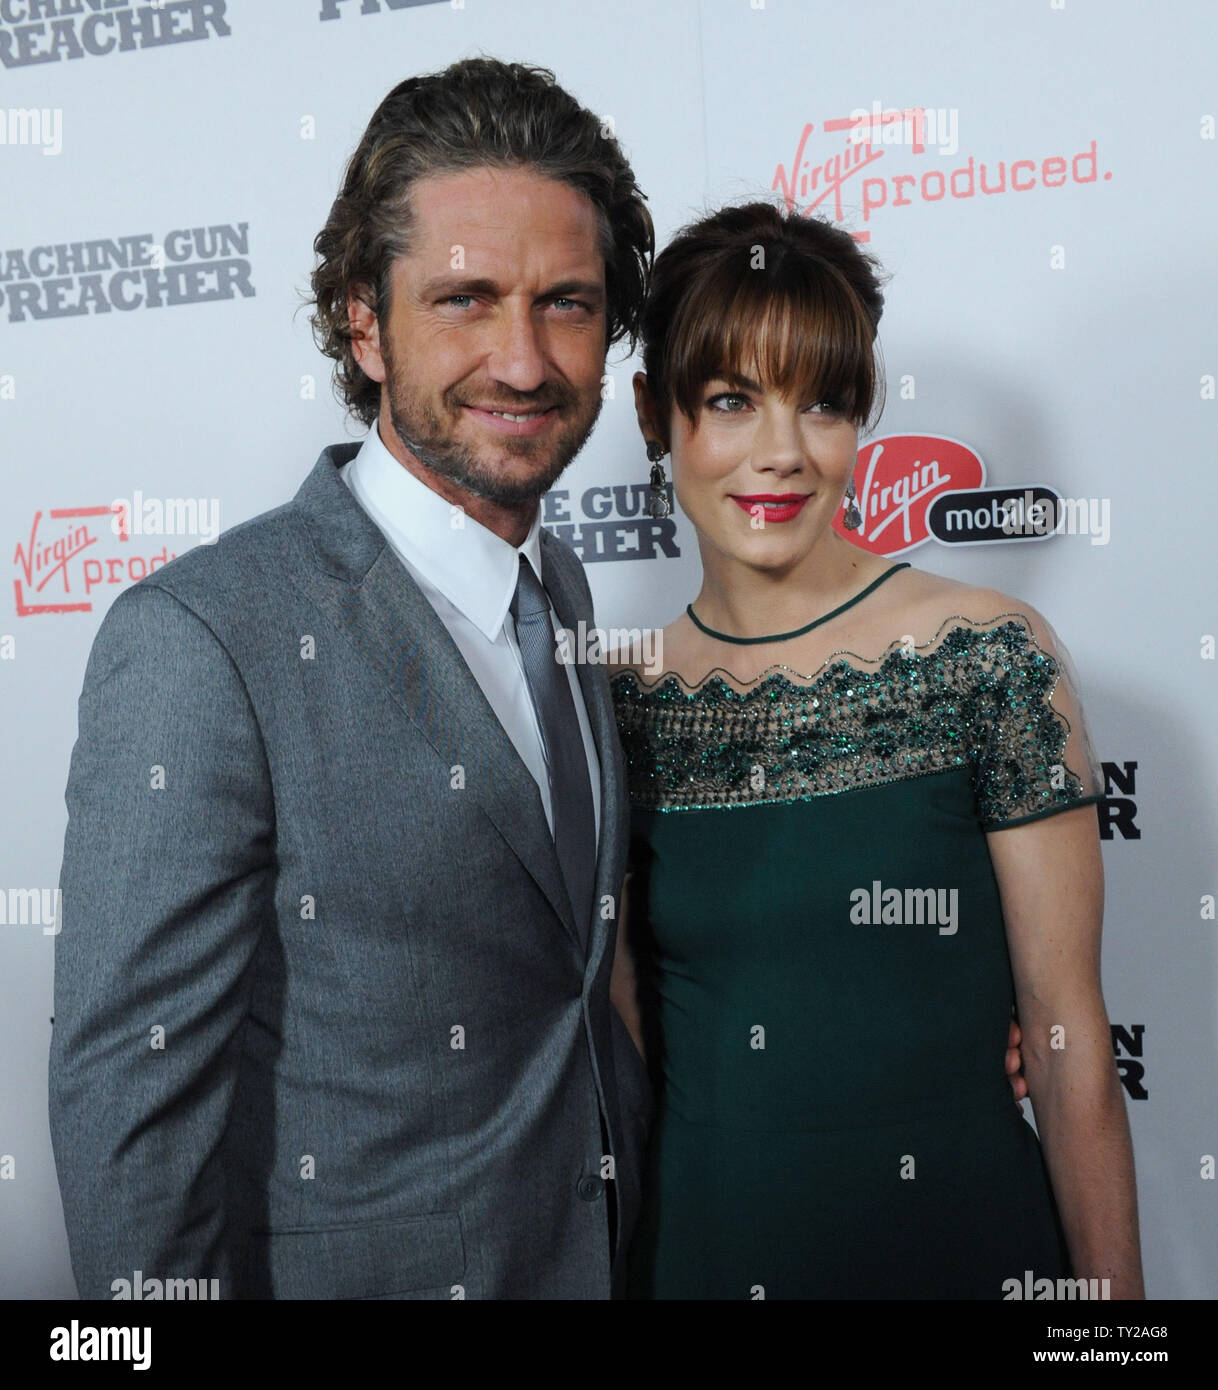 Scotish Actor Gerard Butler And Actress Michelle Monaghan Cast